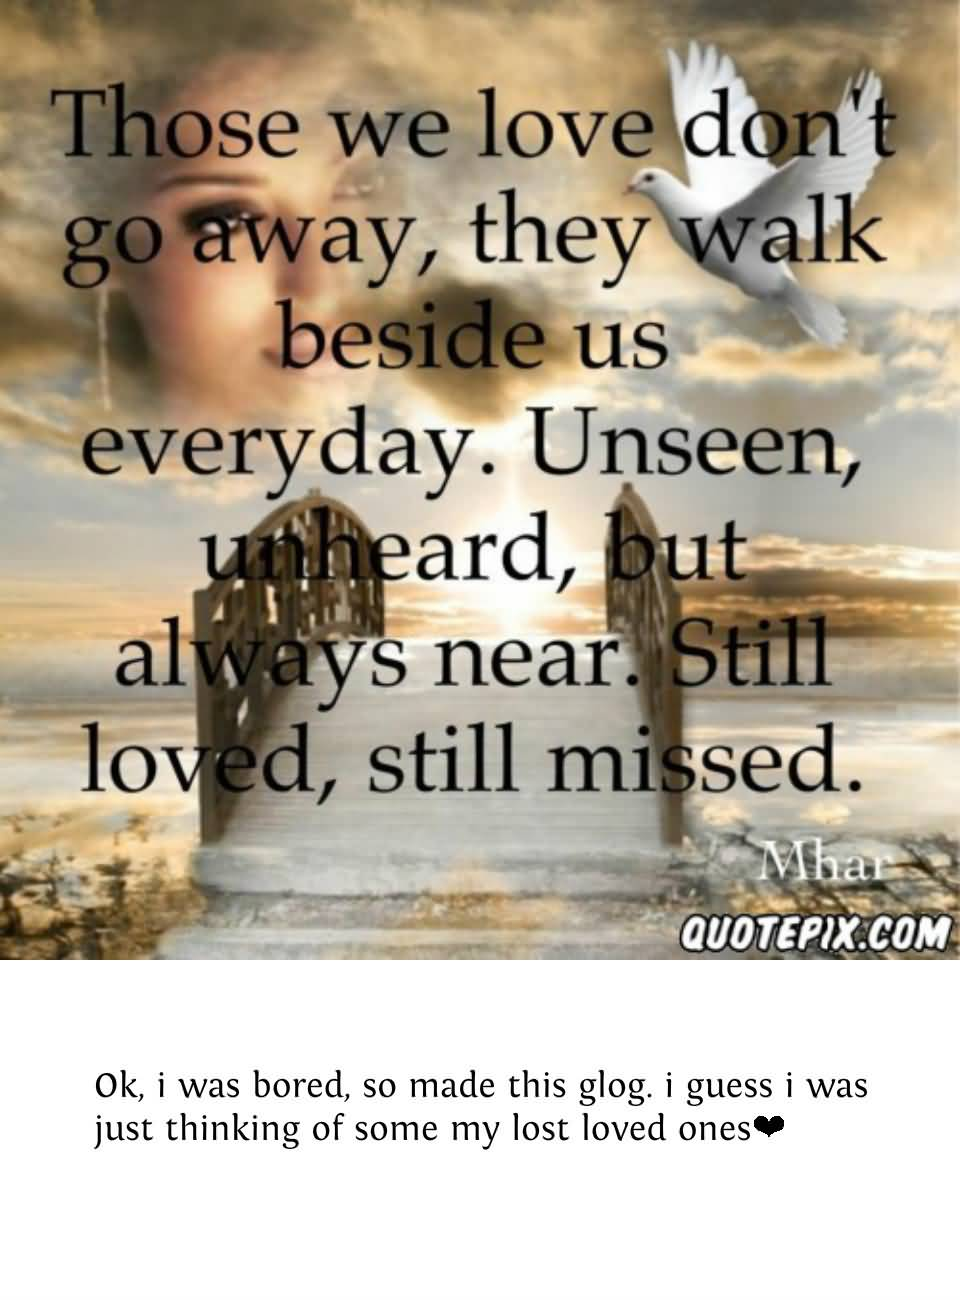 Lost Loved Ones Quotes Amazing 20 In Memory Of Lost Loved Ones Quotes And  Sayings Quotesbae